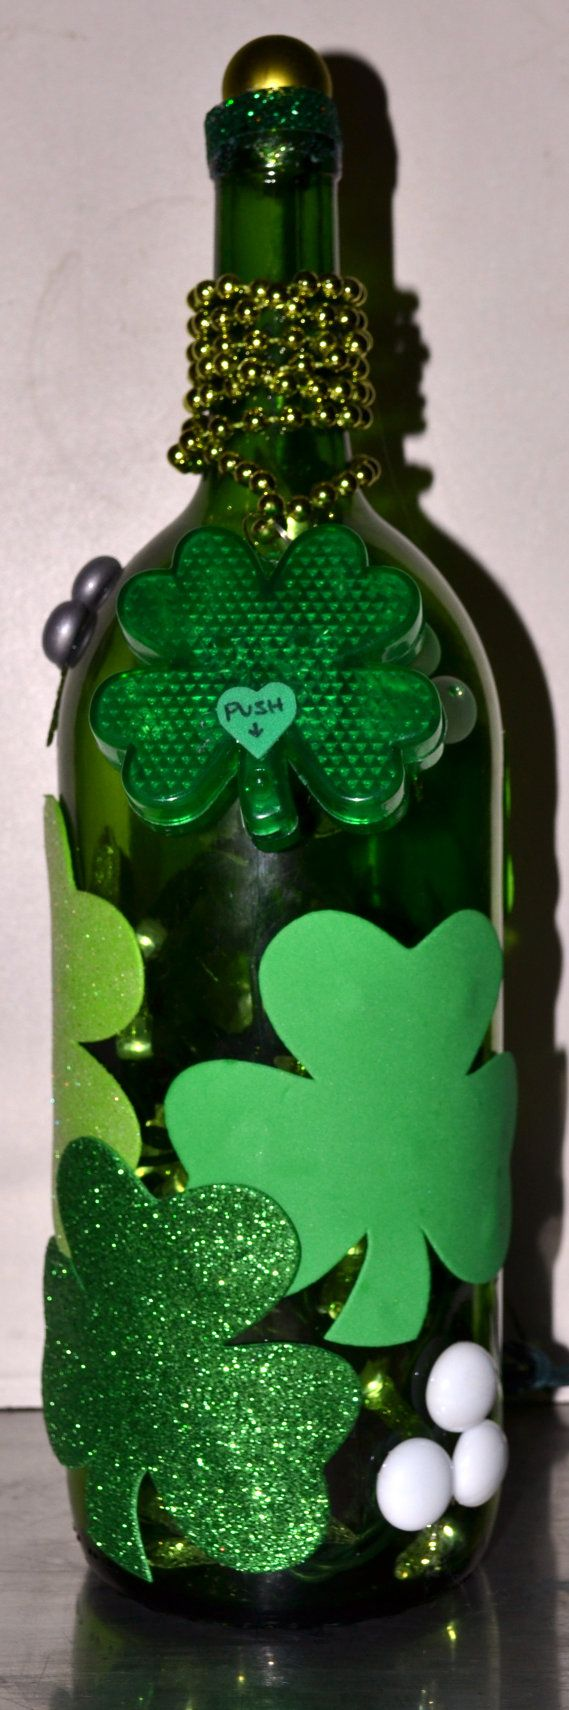 St. Patrick's Day decoration - lights in a decorated wine bottle...or whiskey bottle ;)